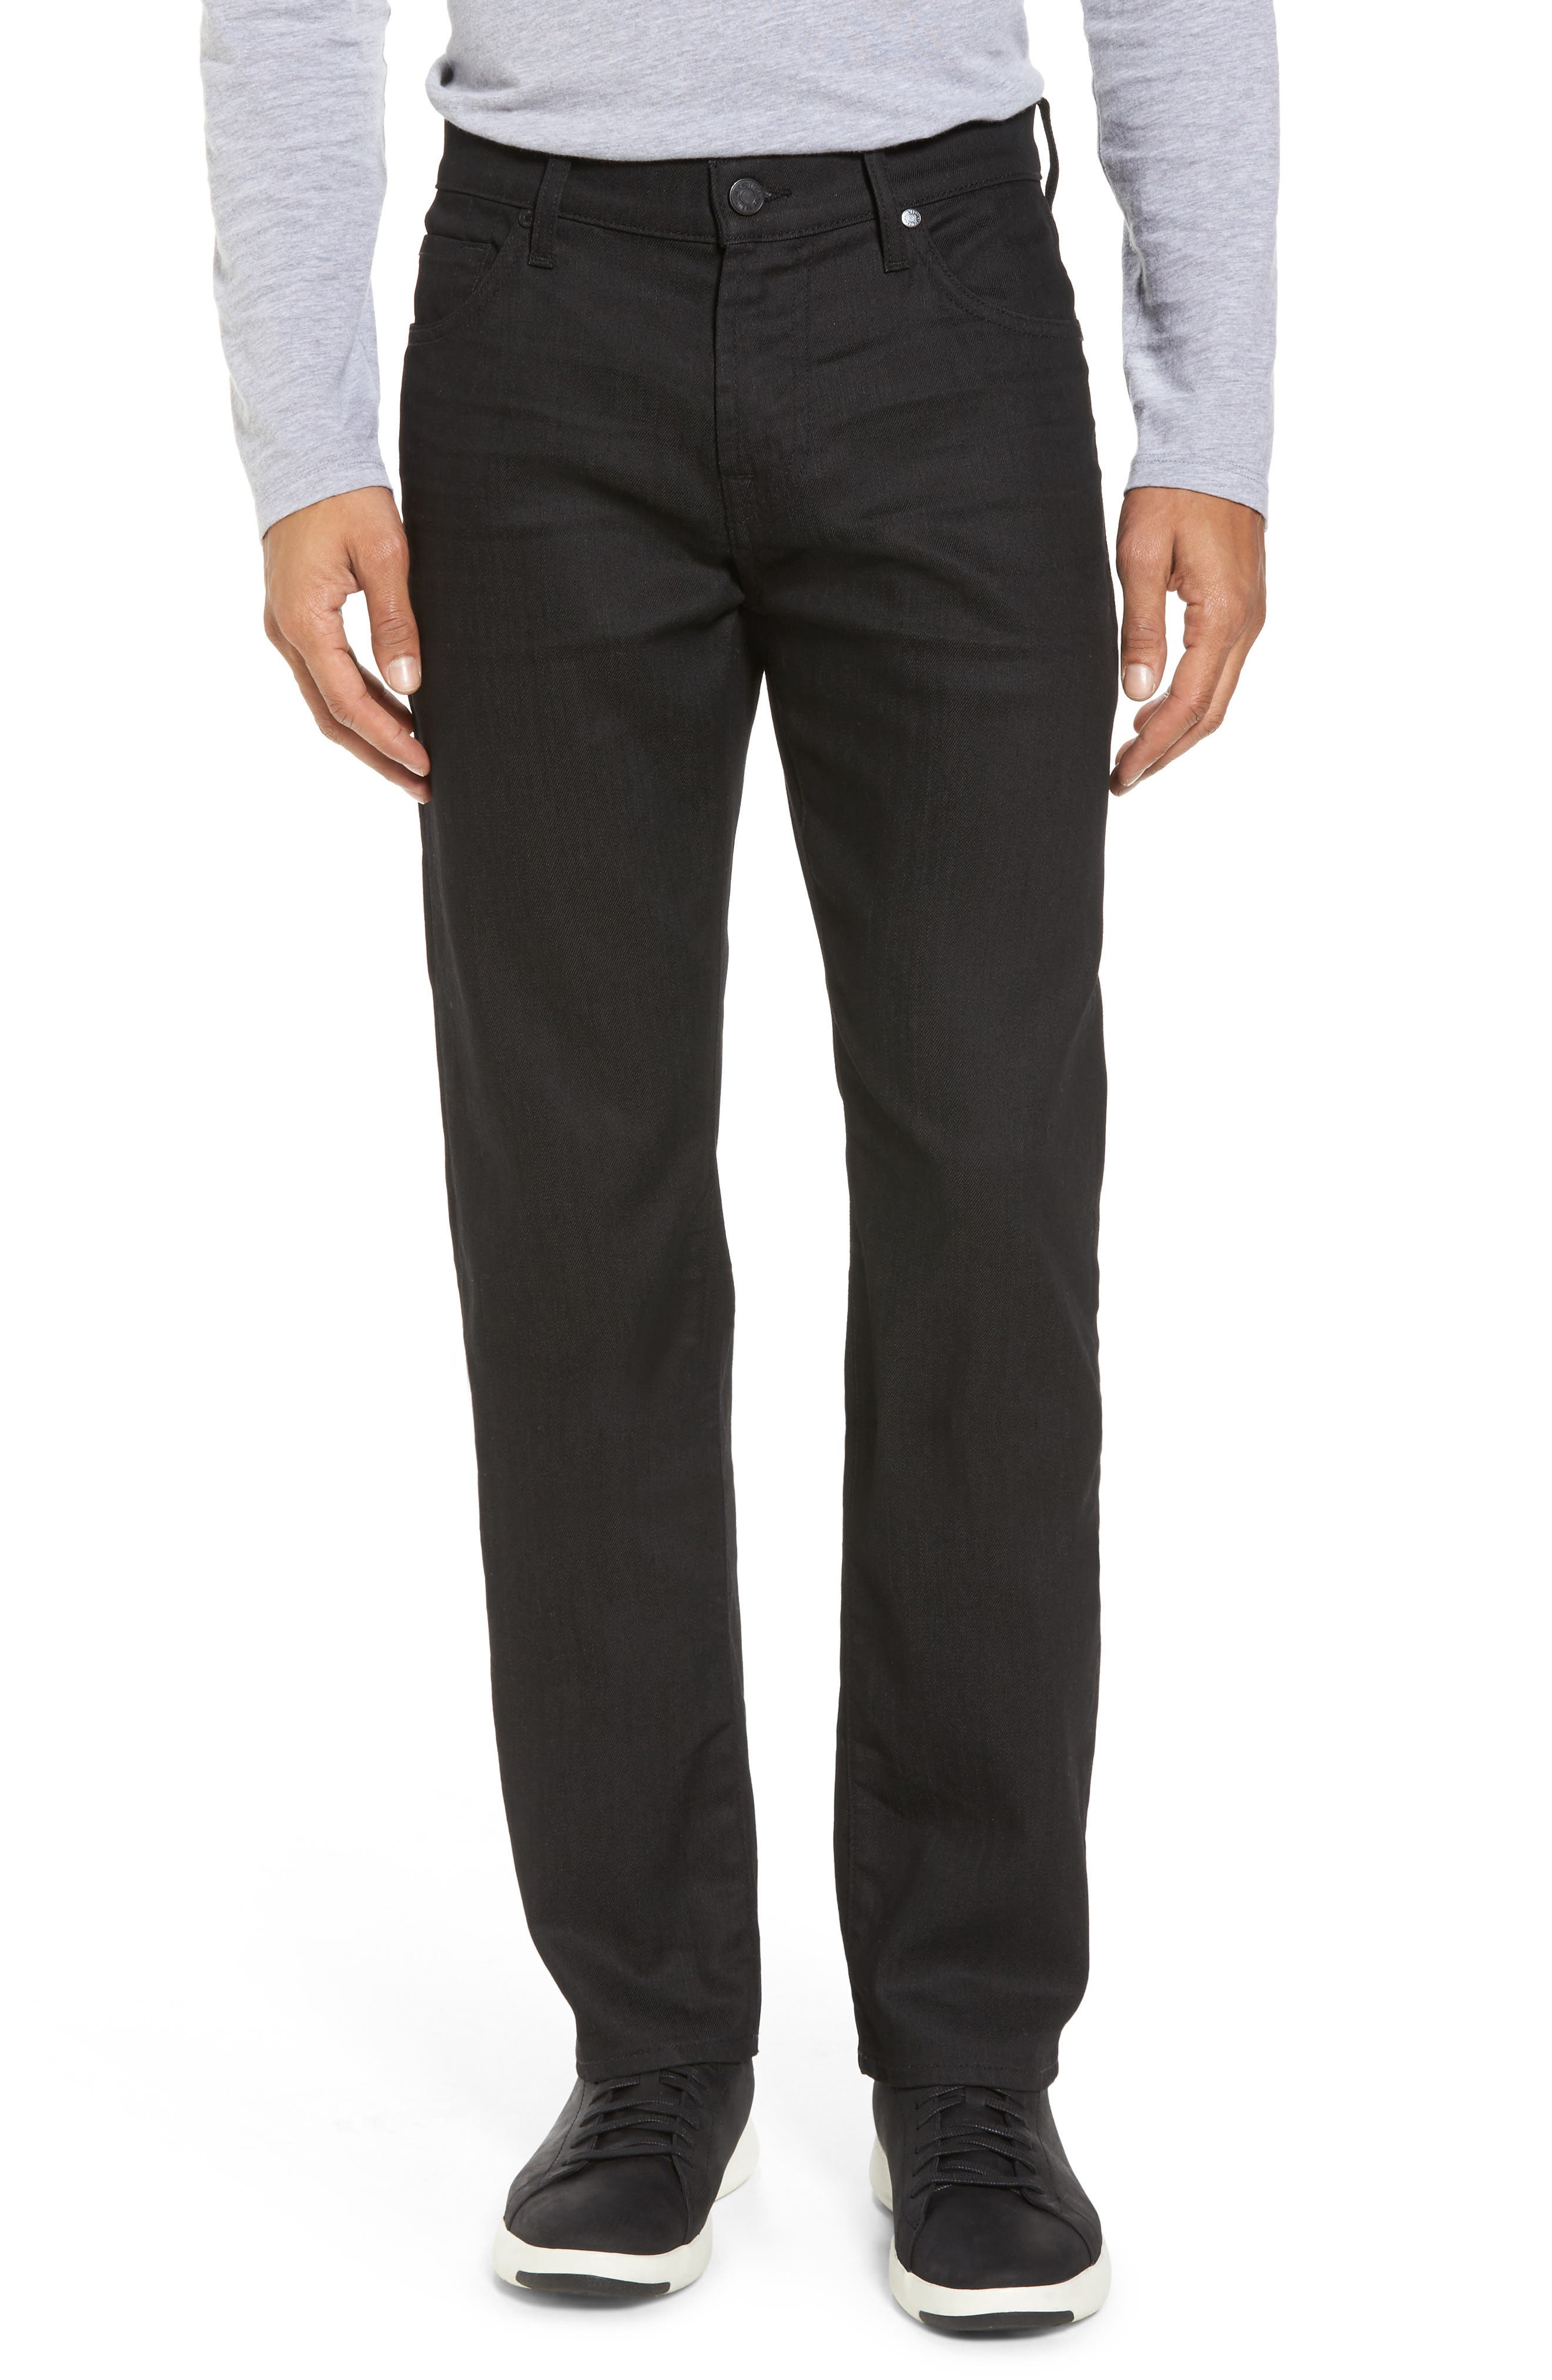 Alternate Image 1 Selected - 7 For All Mankind® Airweft - Slimmy Slim Fit Jeans (Soiree Black)